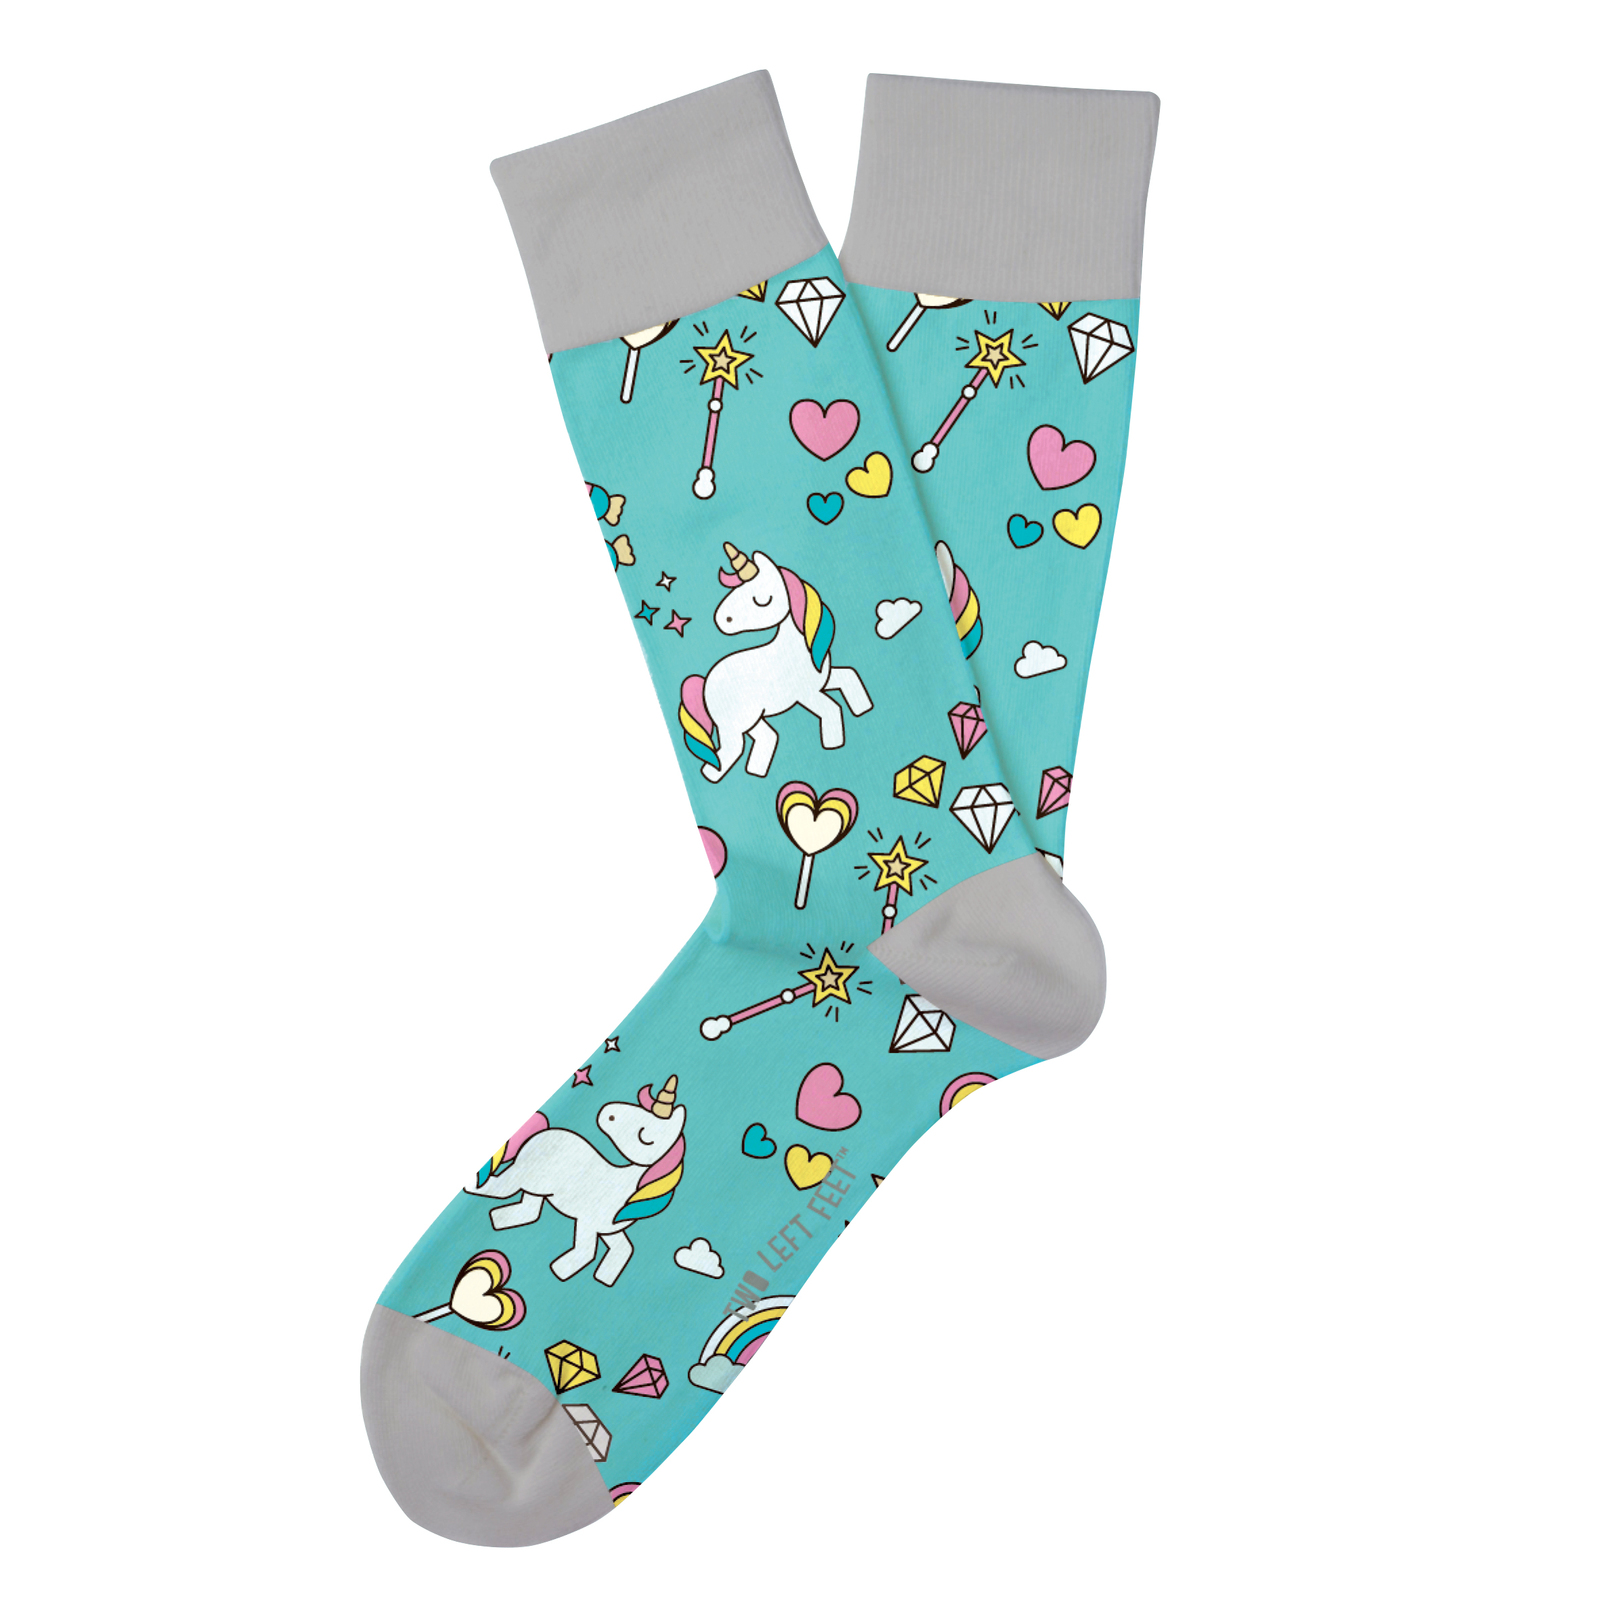 Two Left Feet: Sparkle All Day Everyday Socks - Big image